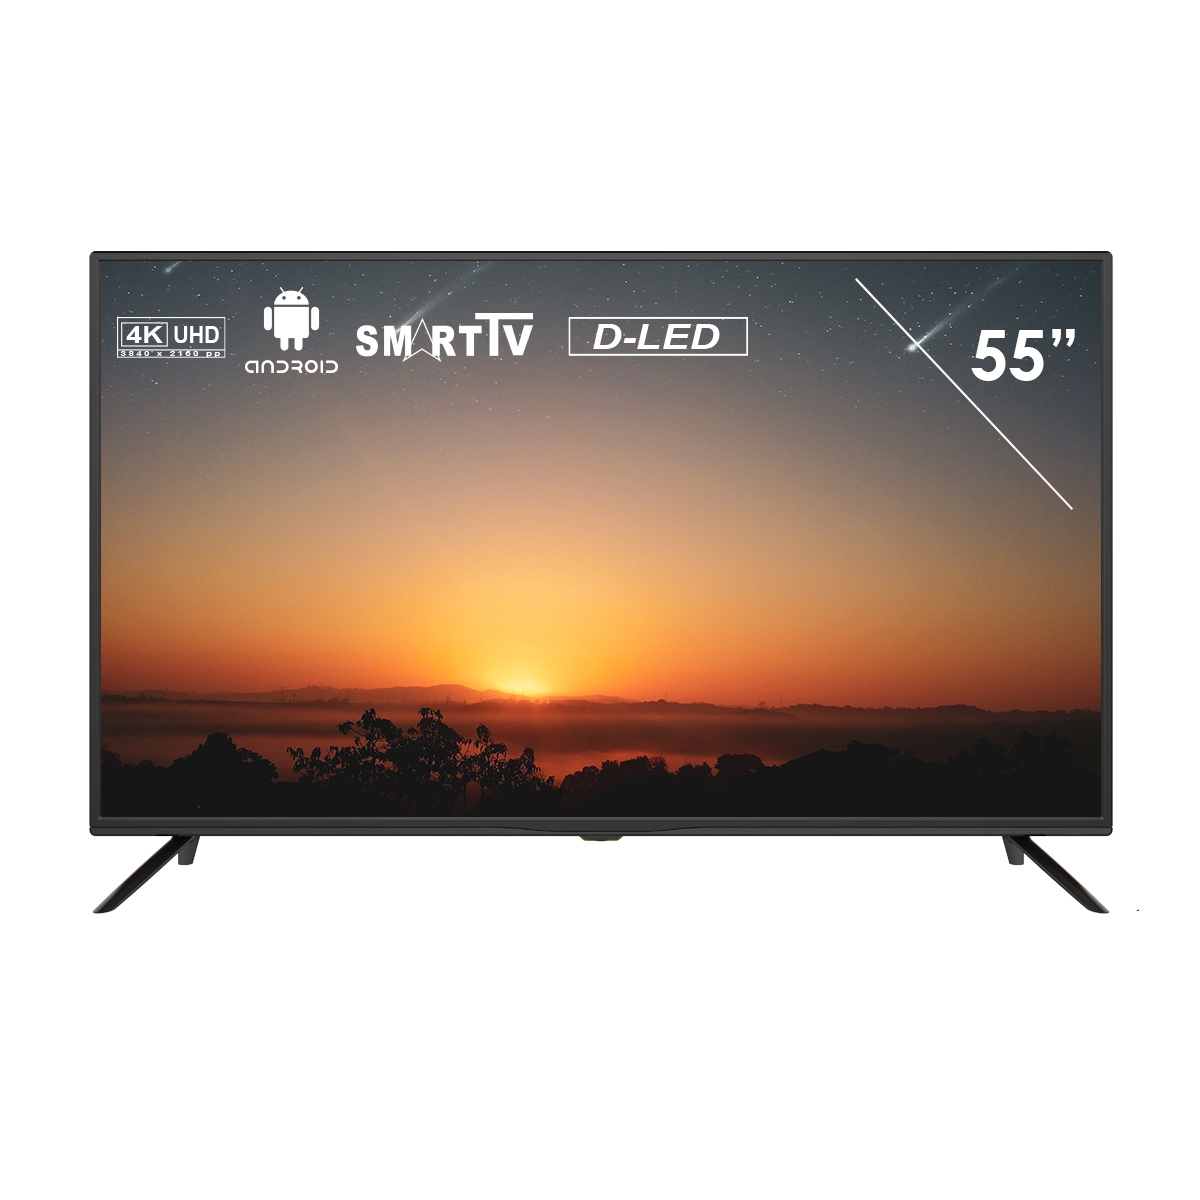 55 inch Smart Tech by BSL TV SMT5519NUSA22 Smart TV Android DBVT2-S2-C CI +, UHD 4K LED 3840x2160pp